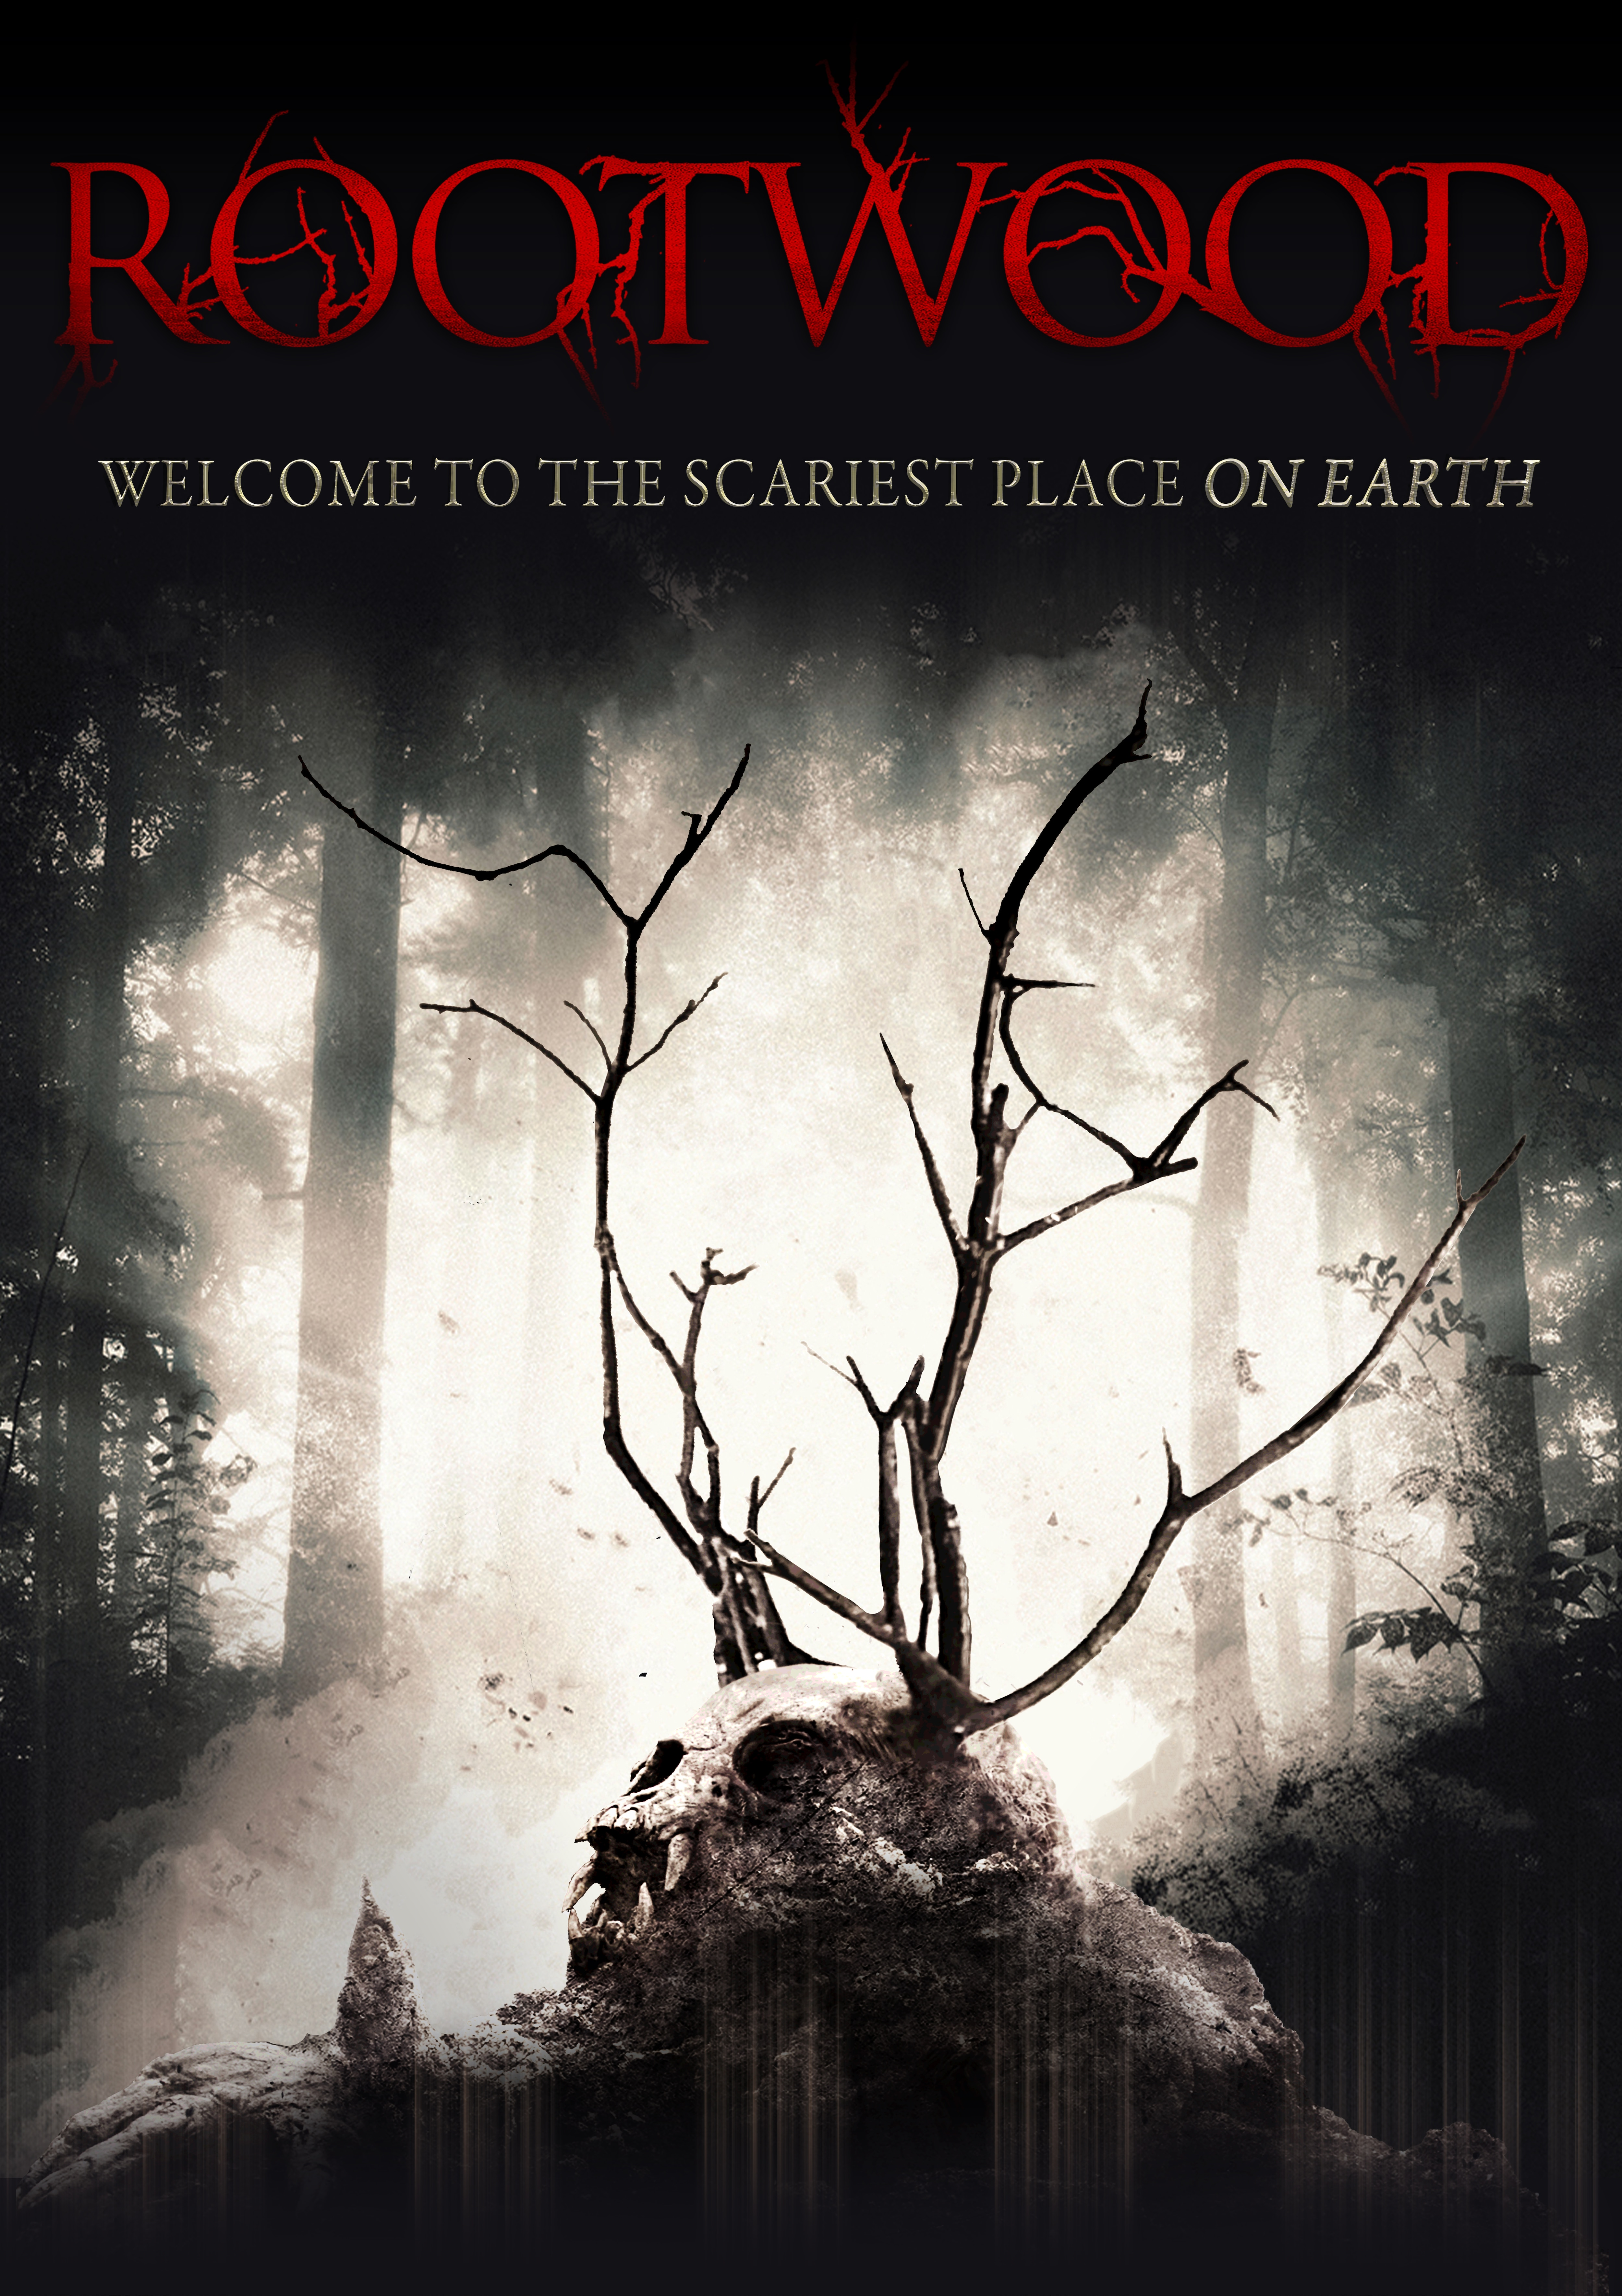 Rootwood Artwork Adjusted Matt 2 0 1 - Trailer & Poster: ROOTWOOD Starring Felissa Rose and Elissa Dowling